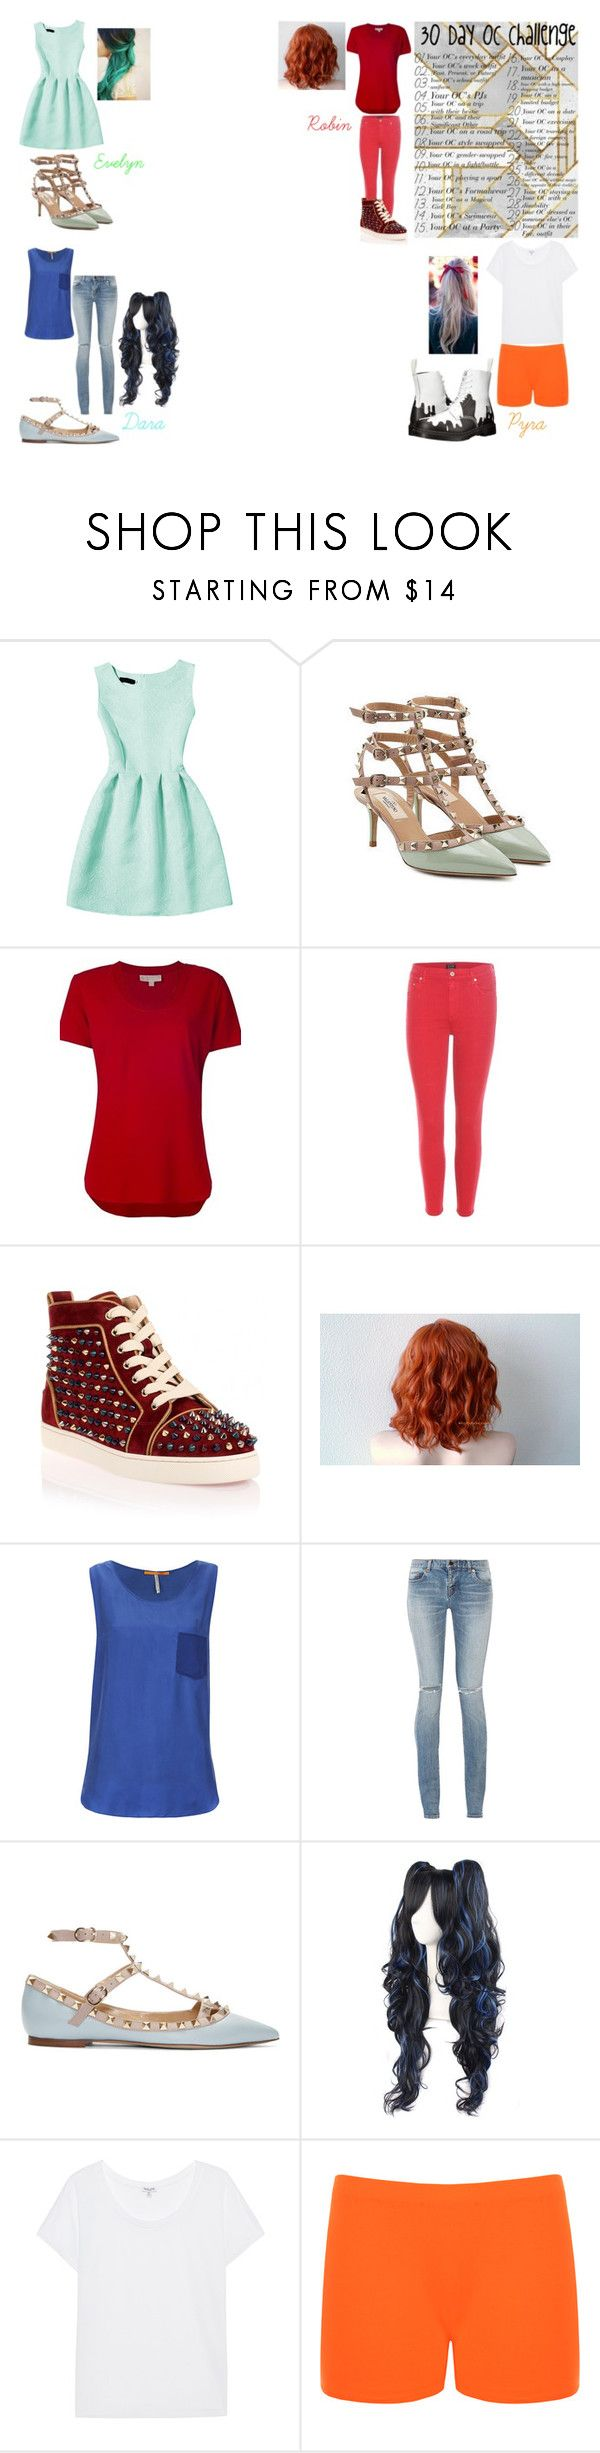 """""""30 Day OC Challenge - Your OC's Everyday Outfit"""" by steam-vinadetta ❤ liked on Polyvore featuring Valentino, MICHAEL Michael Kors, Citizens of Humanity, Christian Louboutin, BOSS Orange, Yves Saint Laurent, Splendid, WearAll and Dr. Martens"""